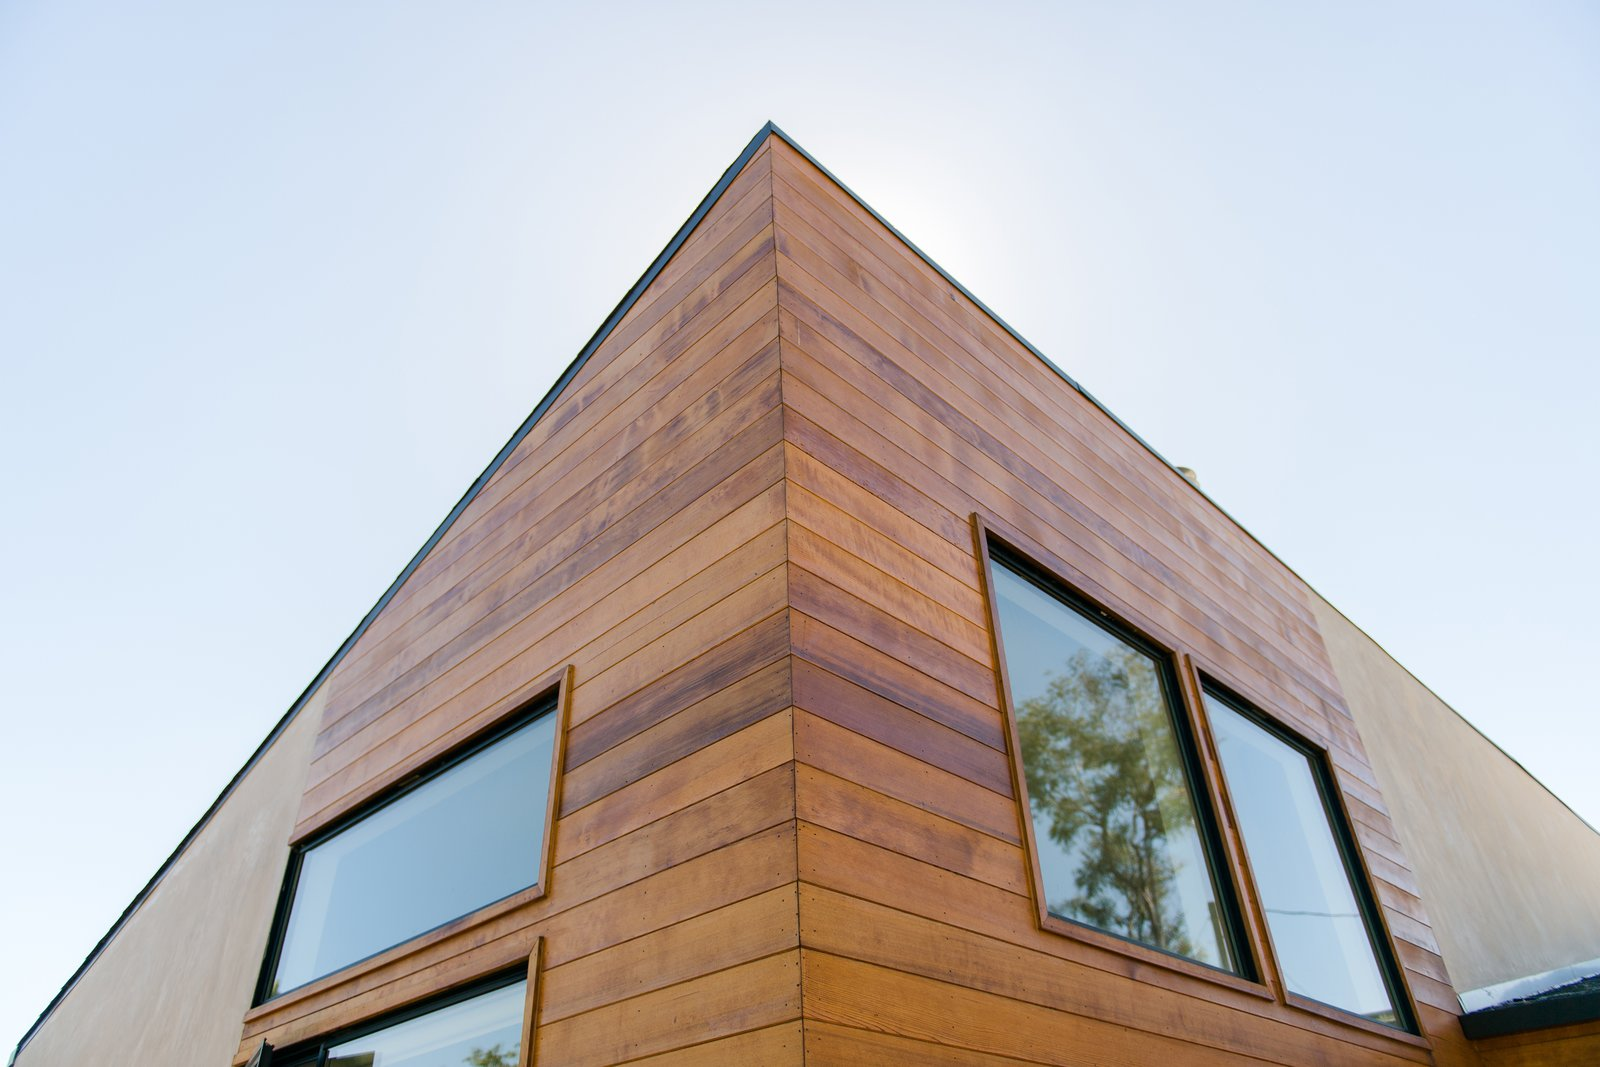 Exterior cedar siding adds asymmetrical interest at the new angled roof at the front addition. Tagged: Exterior, House, Ranch Building Type, Wood Siding Material, and Stucco Siding Material.  A California Ranch Home, Reimagined by MYD studio, inc.